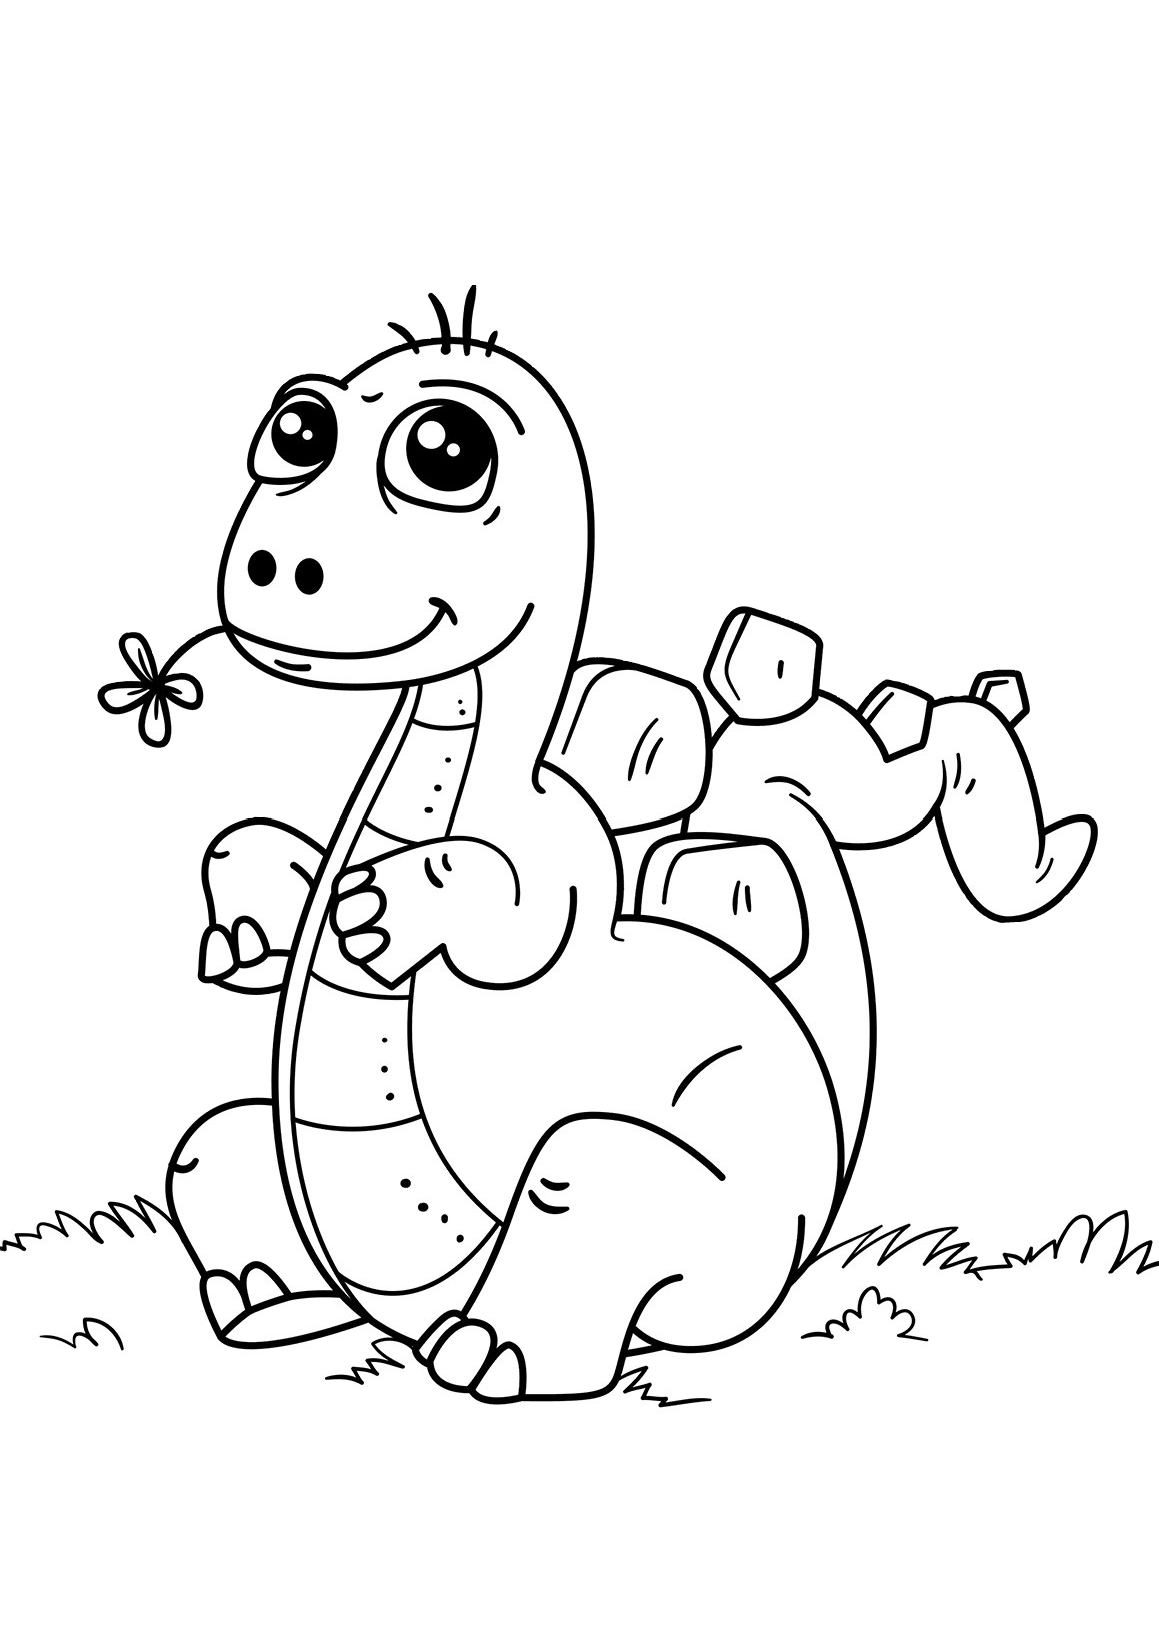 Cute Dinosaur Coloring Pages Really Cute looking Dino